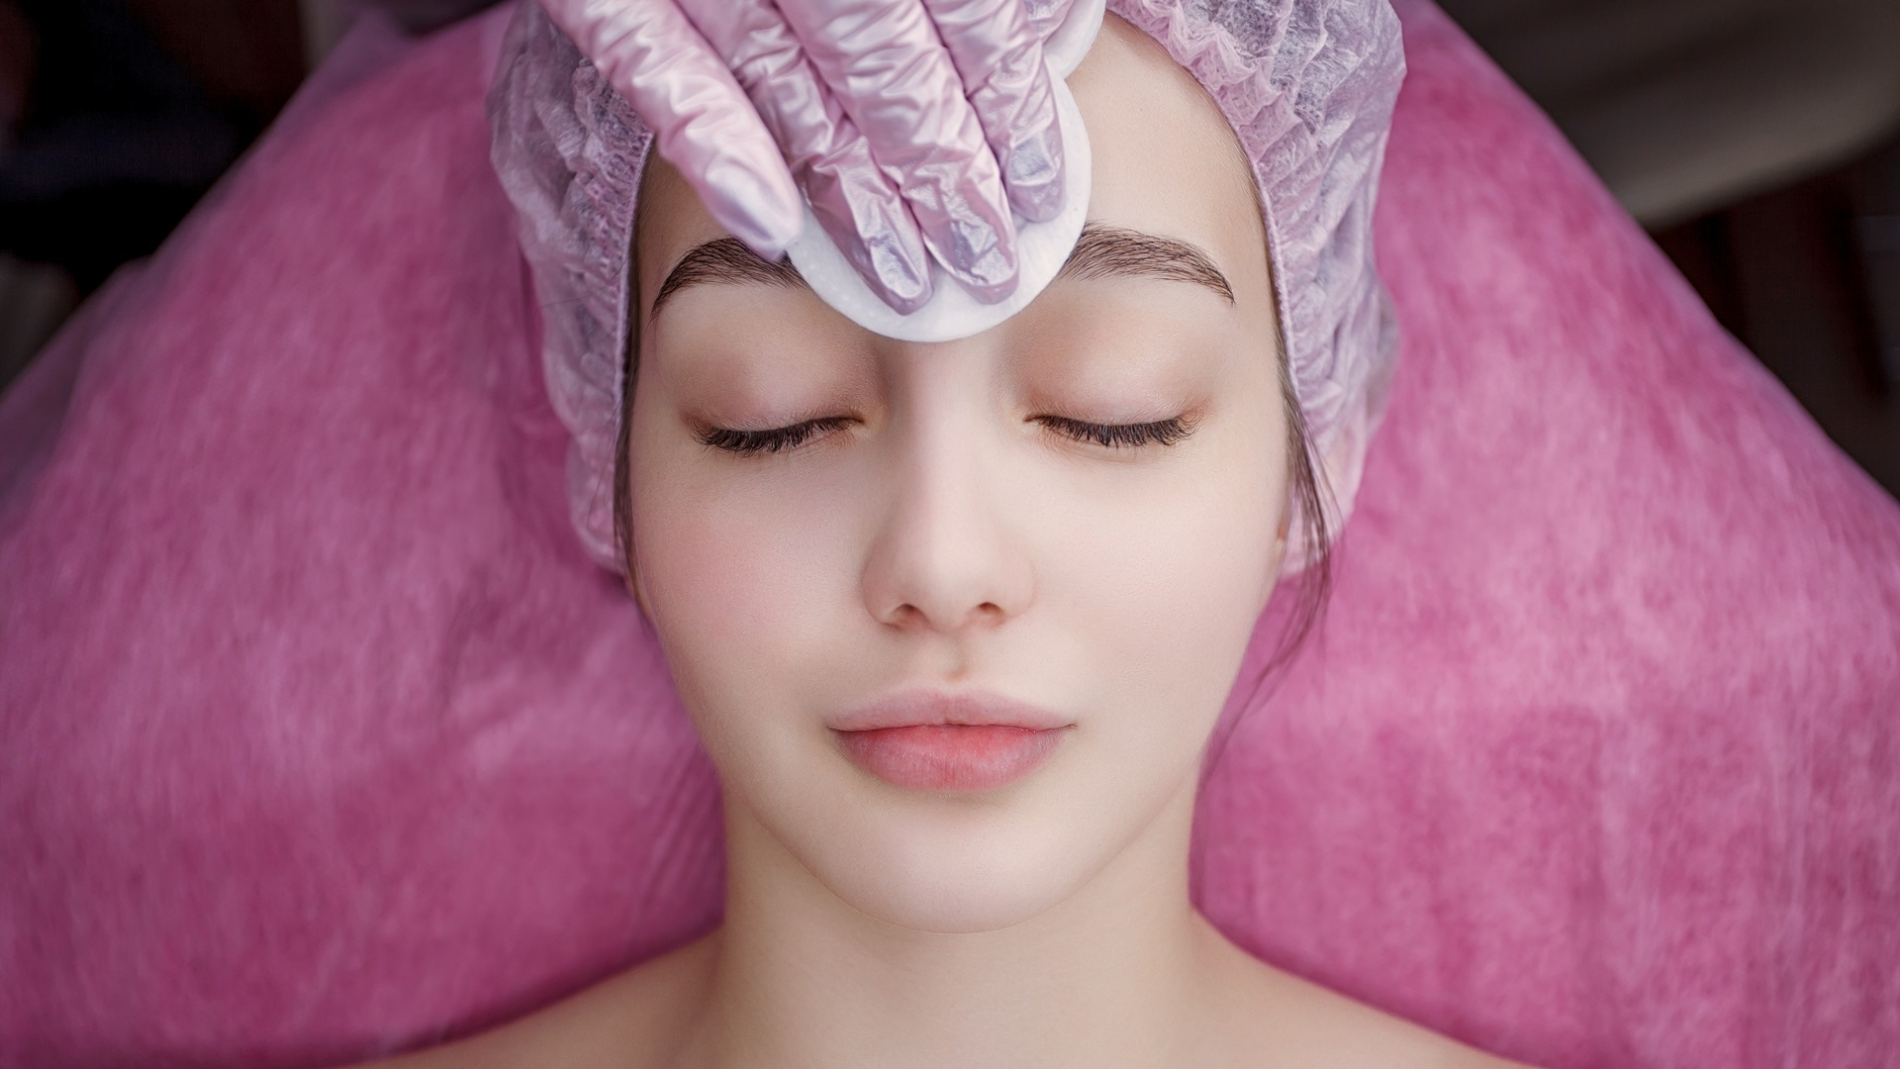 Beautician makes cleansing facial skin girl. Beauty treatment. Cosmetology. Cosmetologist hands cleanse the skin. Facial skin care. Smiling girl procedure. Visiting cosmetology clinic.